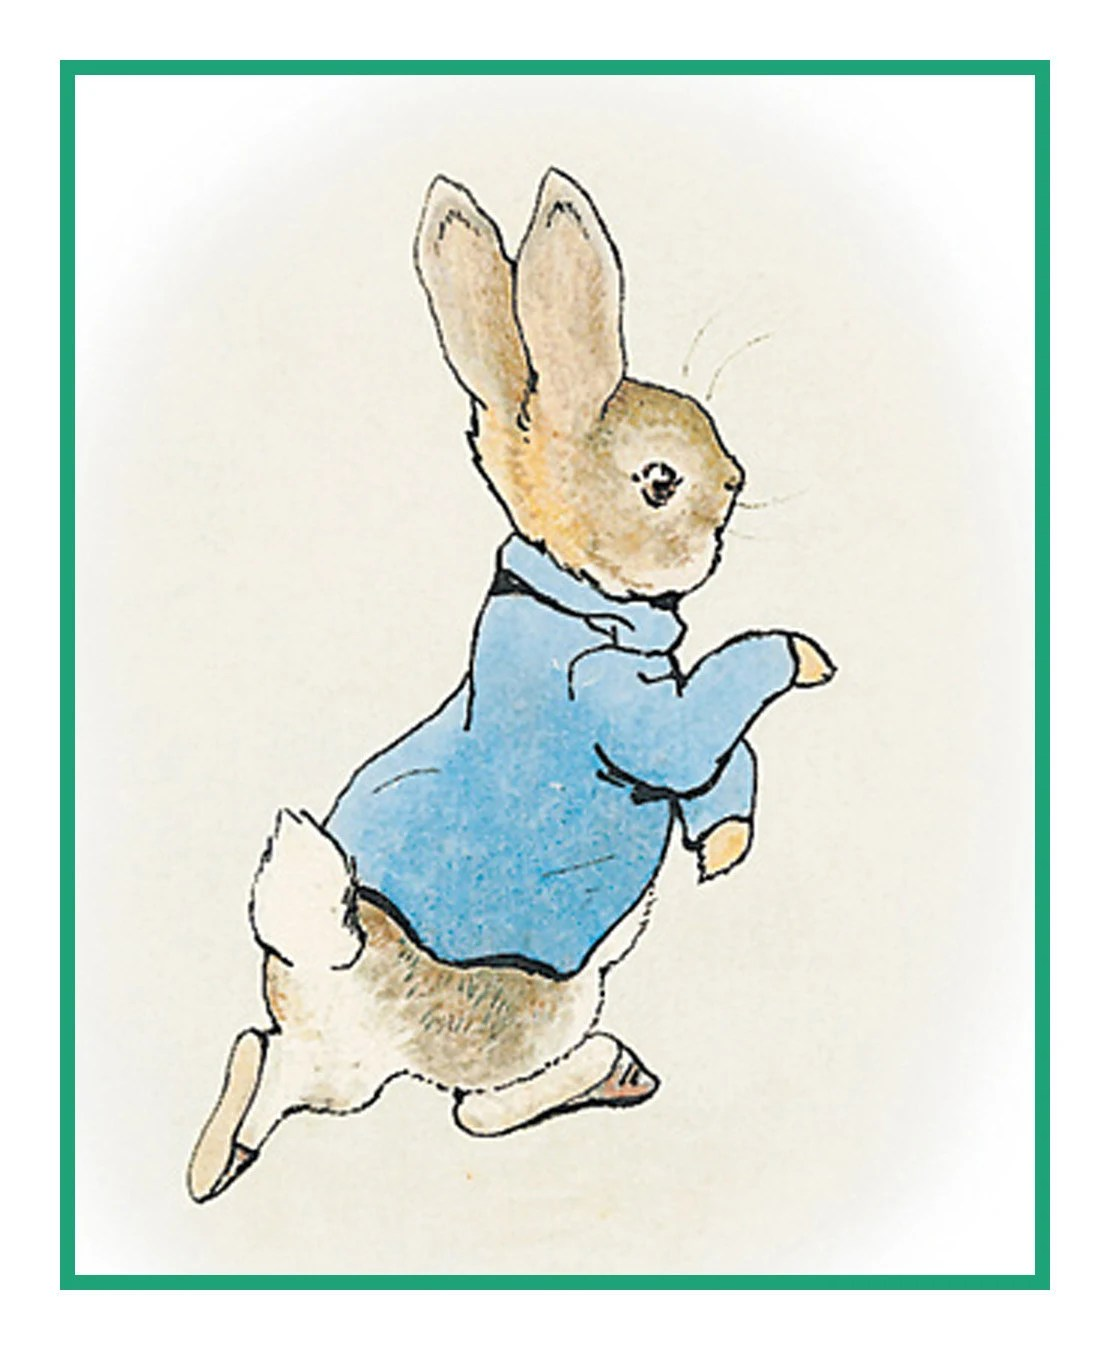 Peter Rabbit From The Tales Of Peter Rabbit By Beatrix Potter